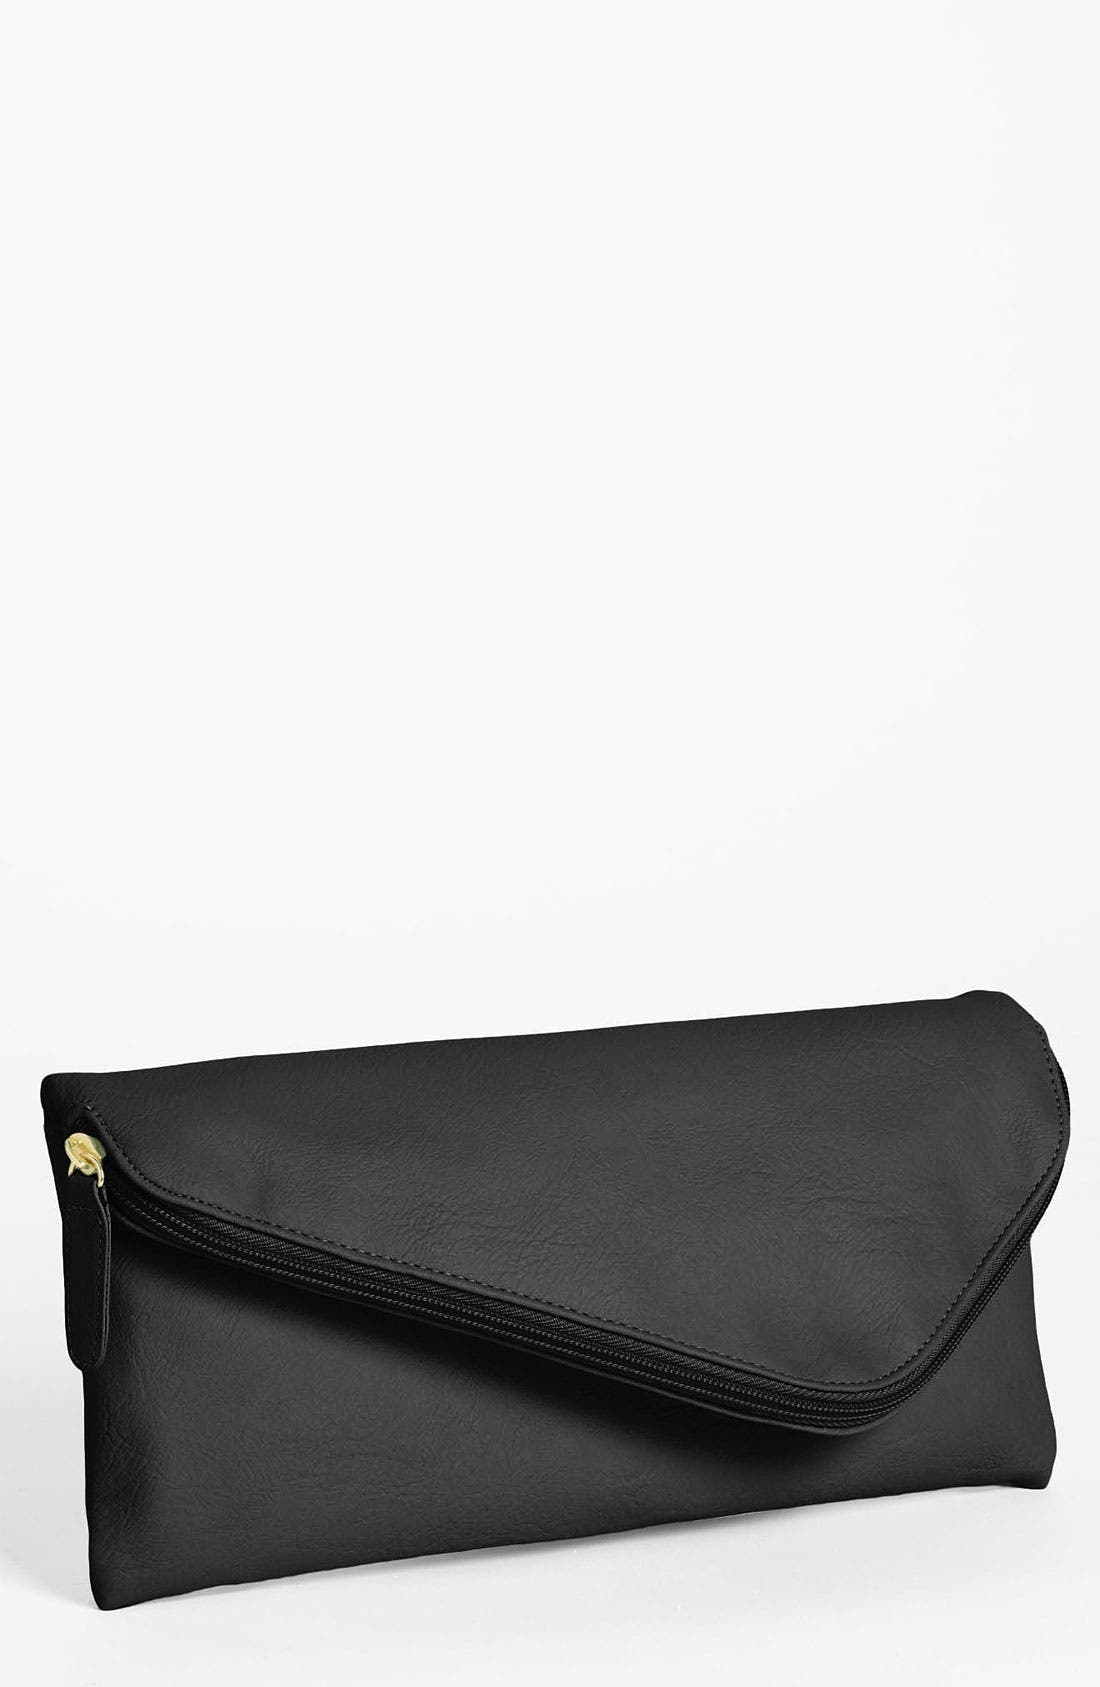 Main Image - Lulu Zip Top Envelope Clutch